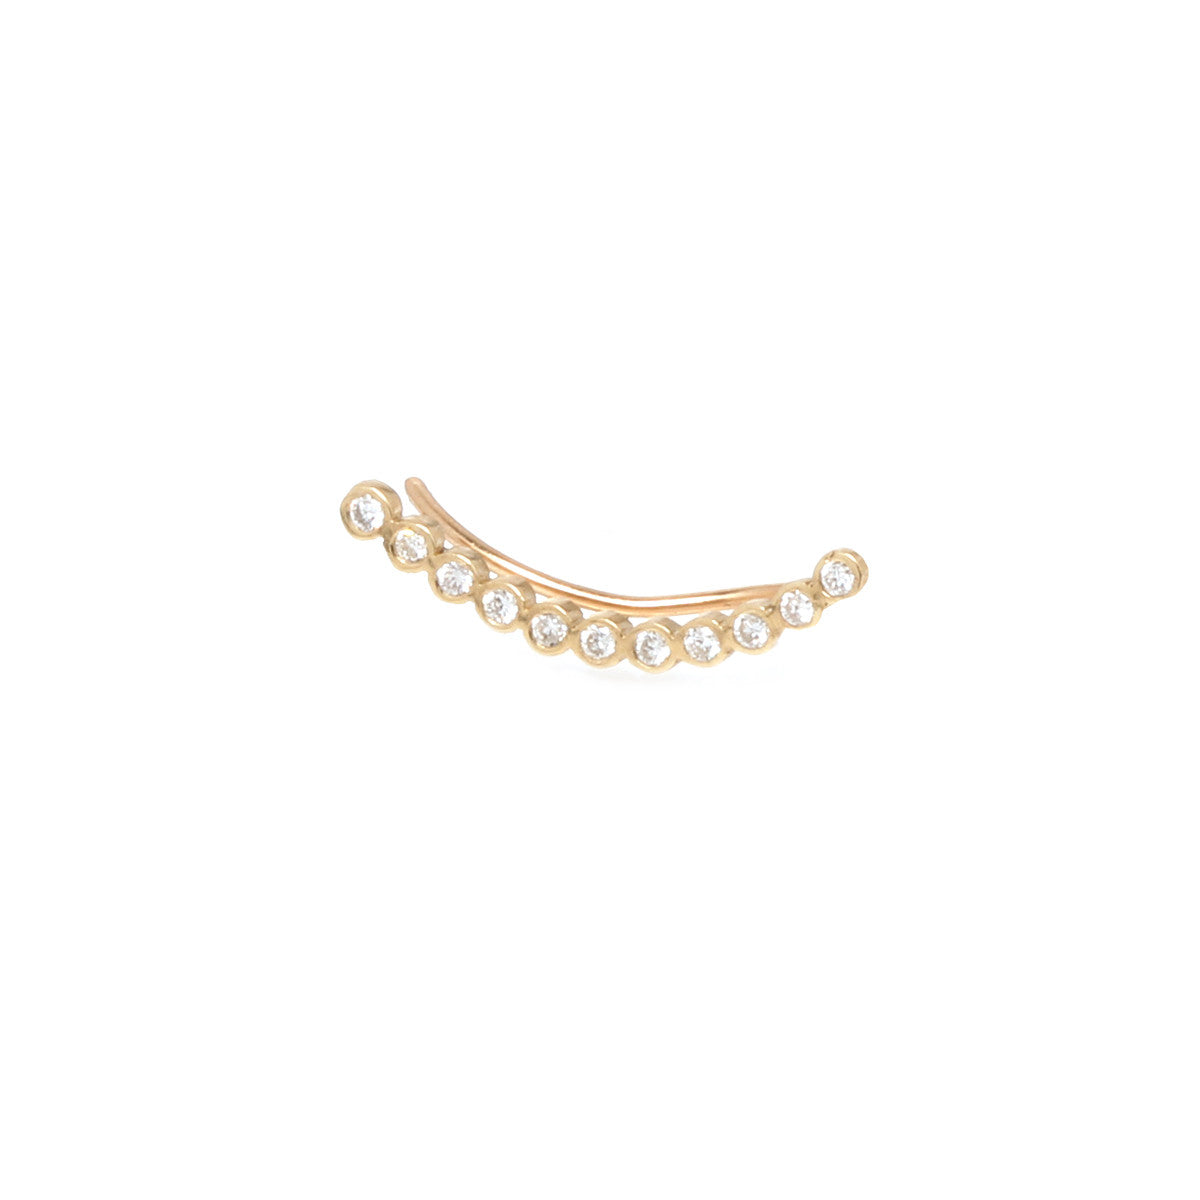 Zoë Chicco 14kt Yellow Gold Tiny Bezel Set Ear Shield